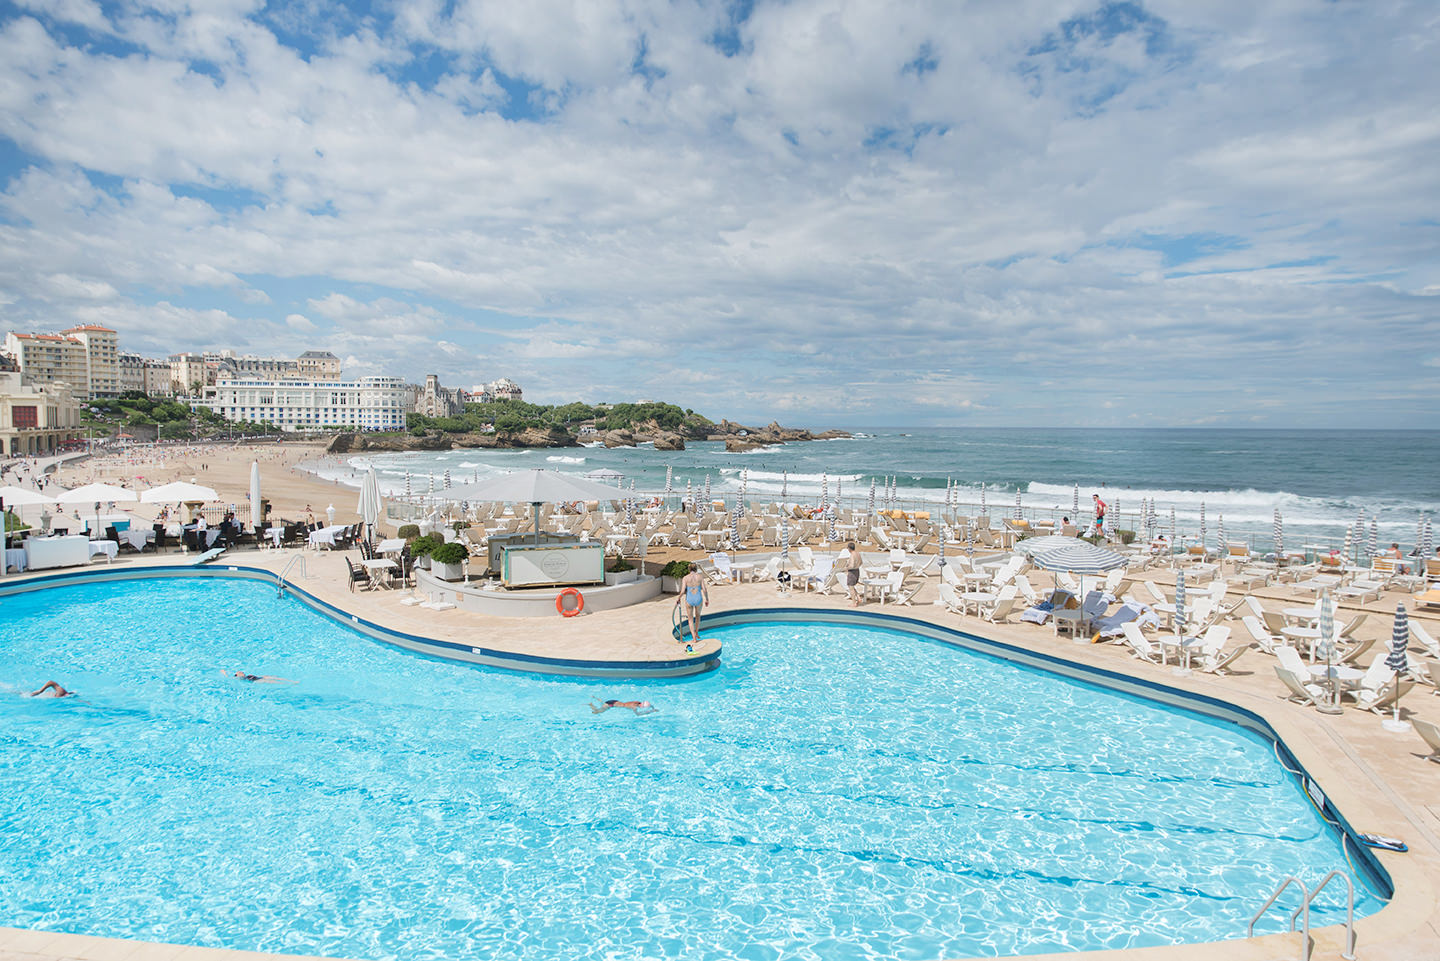 Blog-Mode-And-The-City-Lifestyle-Dior-California-Biarritz17